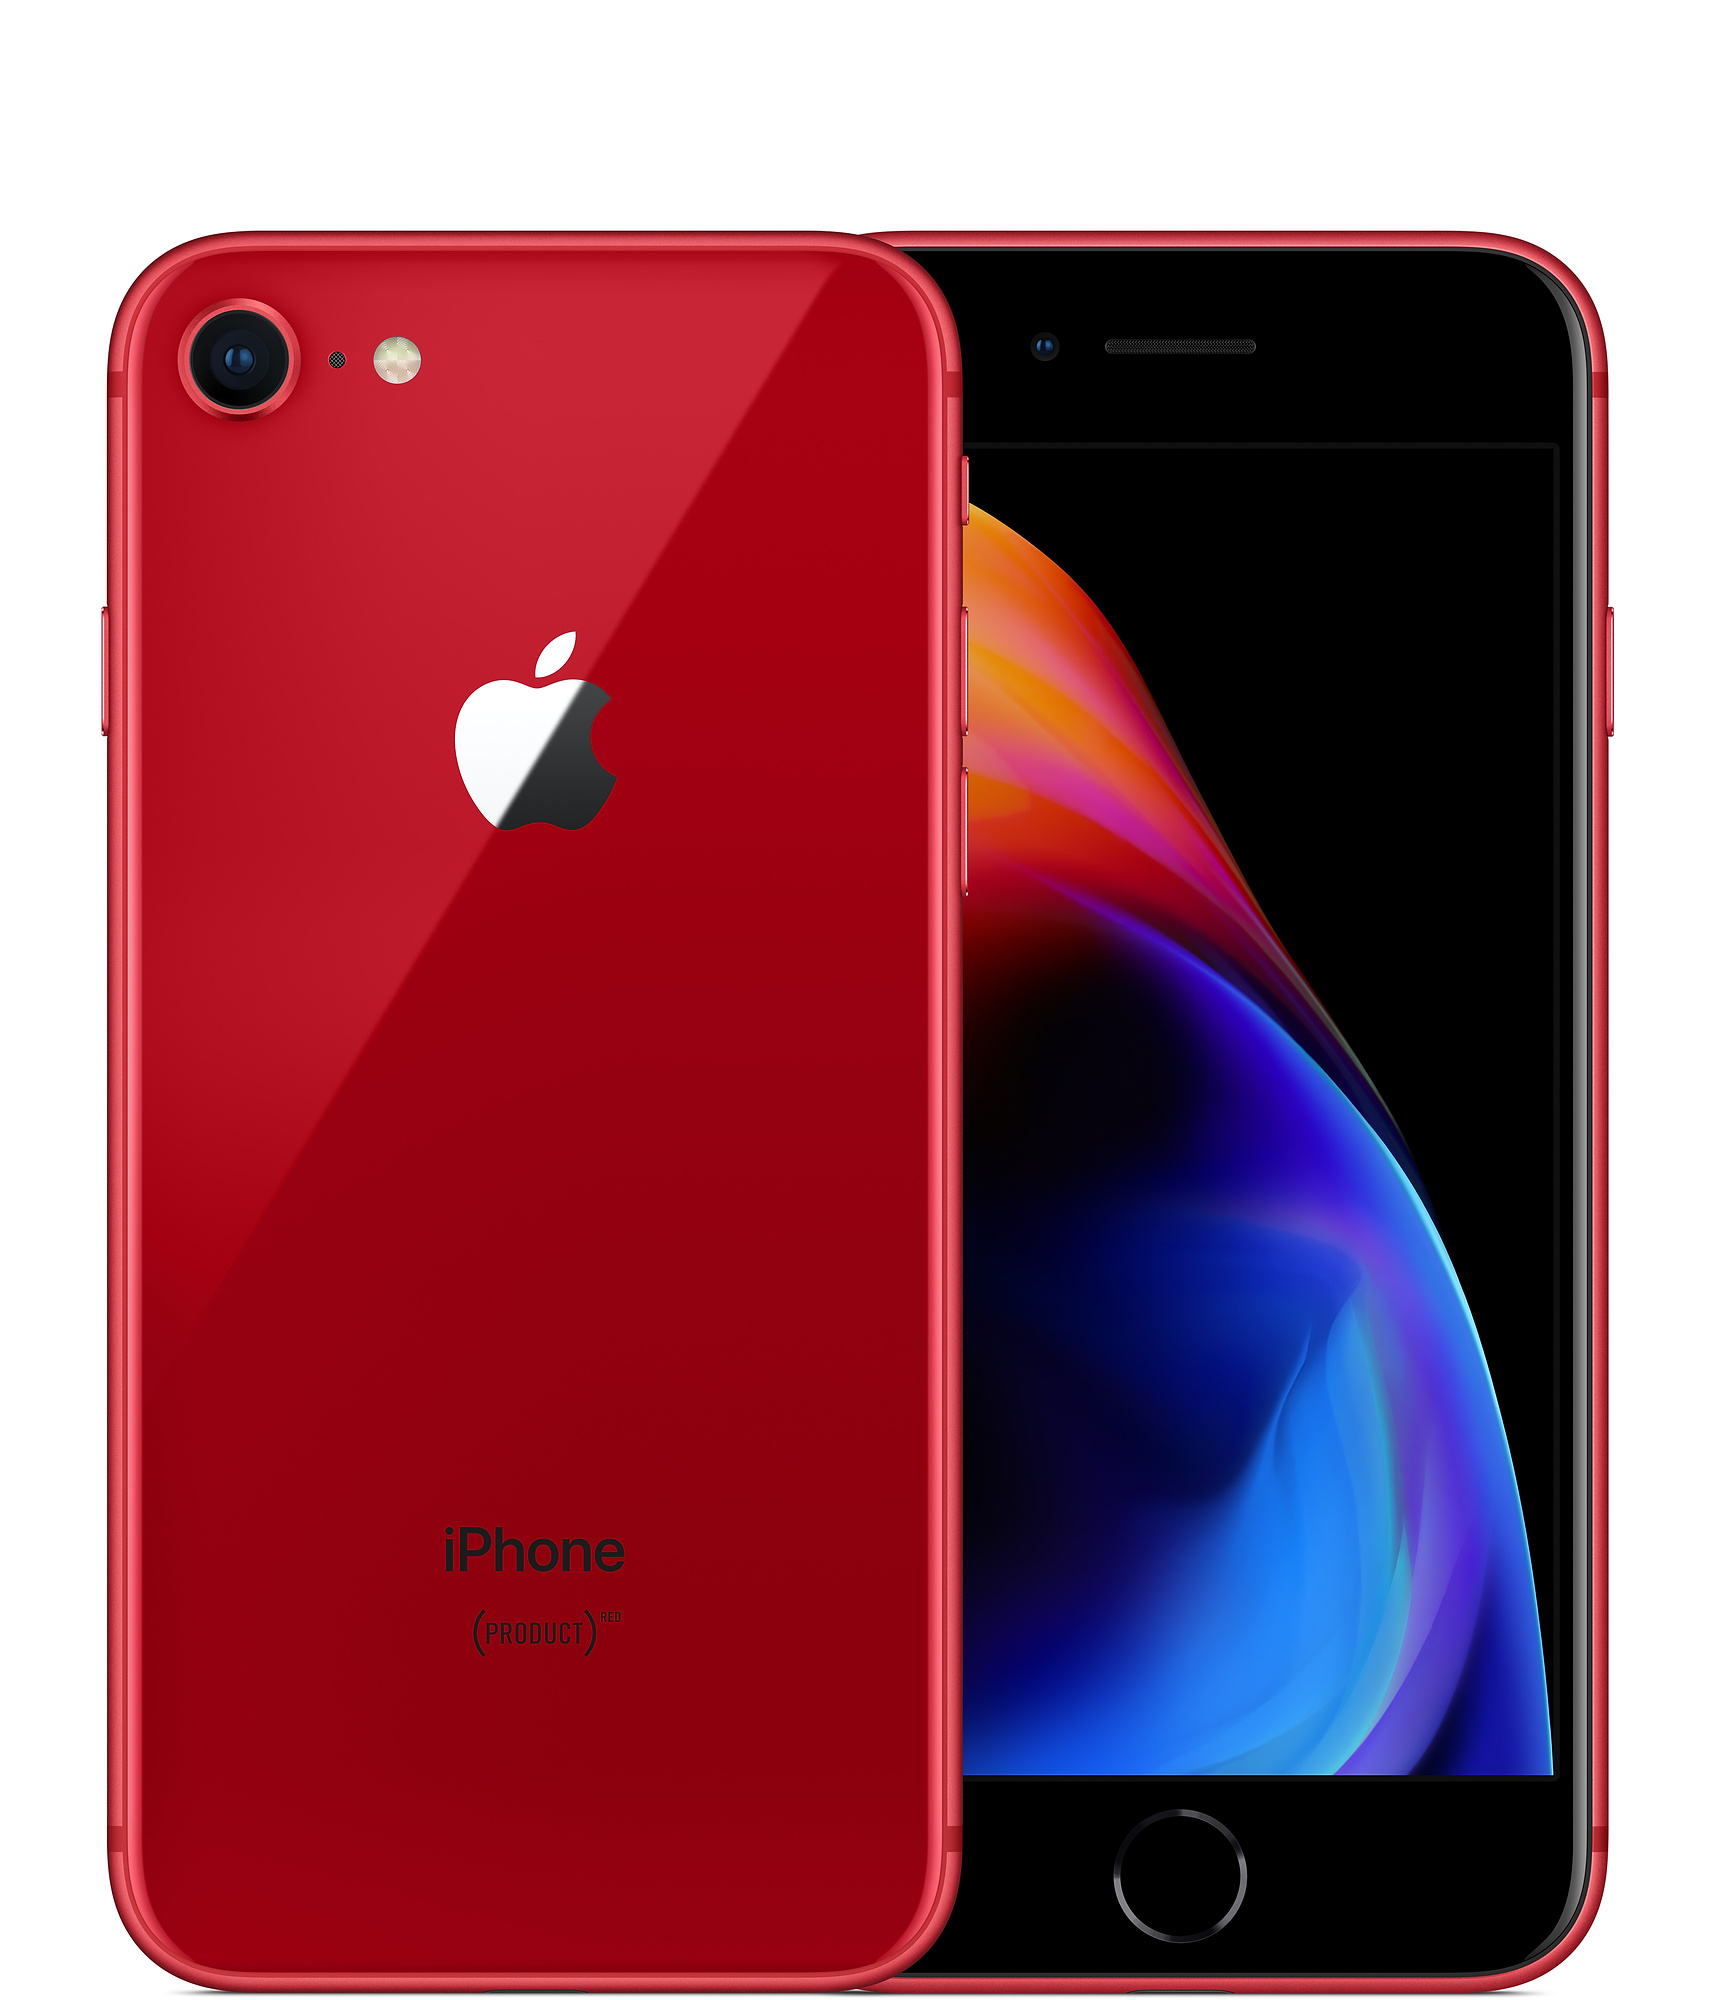 Apple iPhone 8 with FaceTime - 256GB, 4G LTE, Red